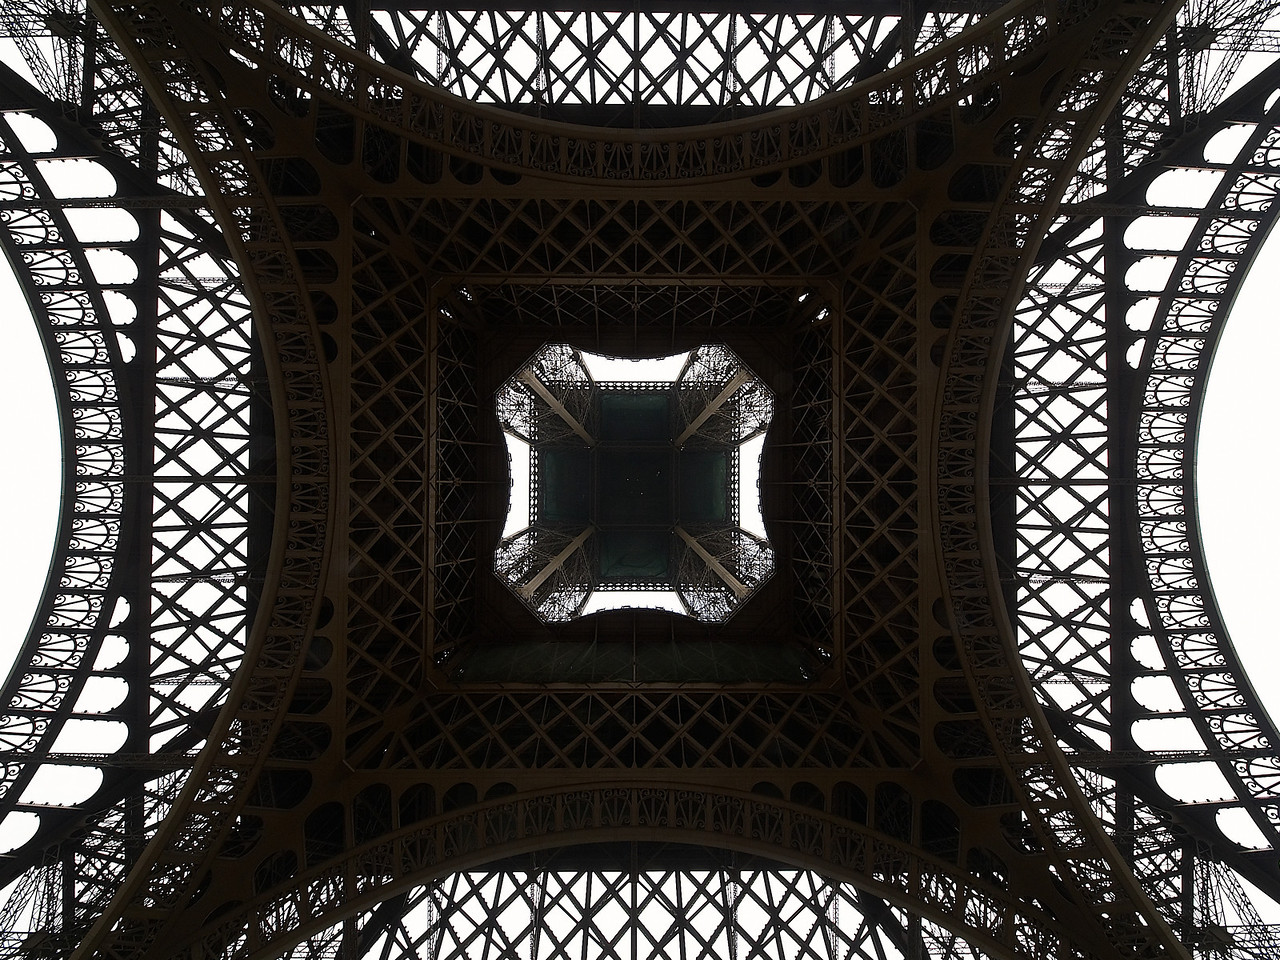 Eiffel Tower from directly under, at 7mm.